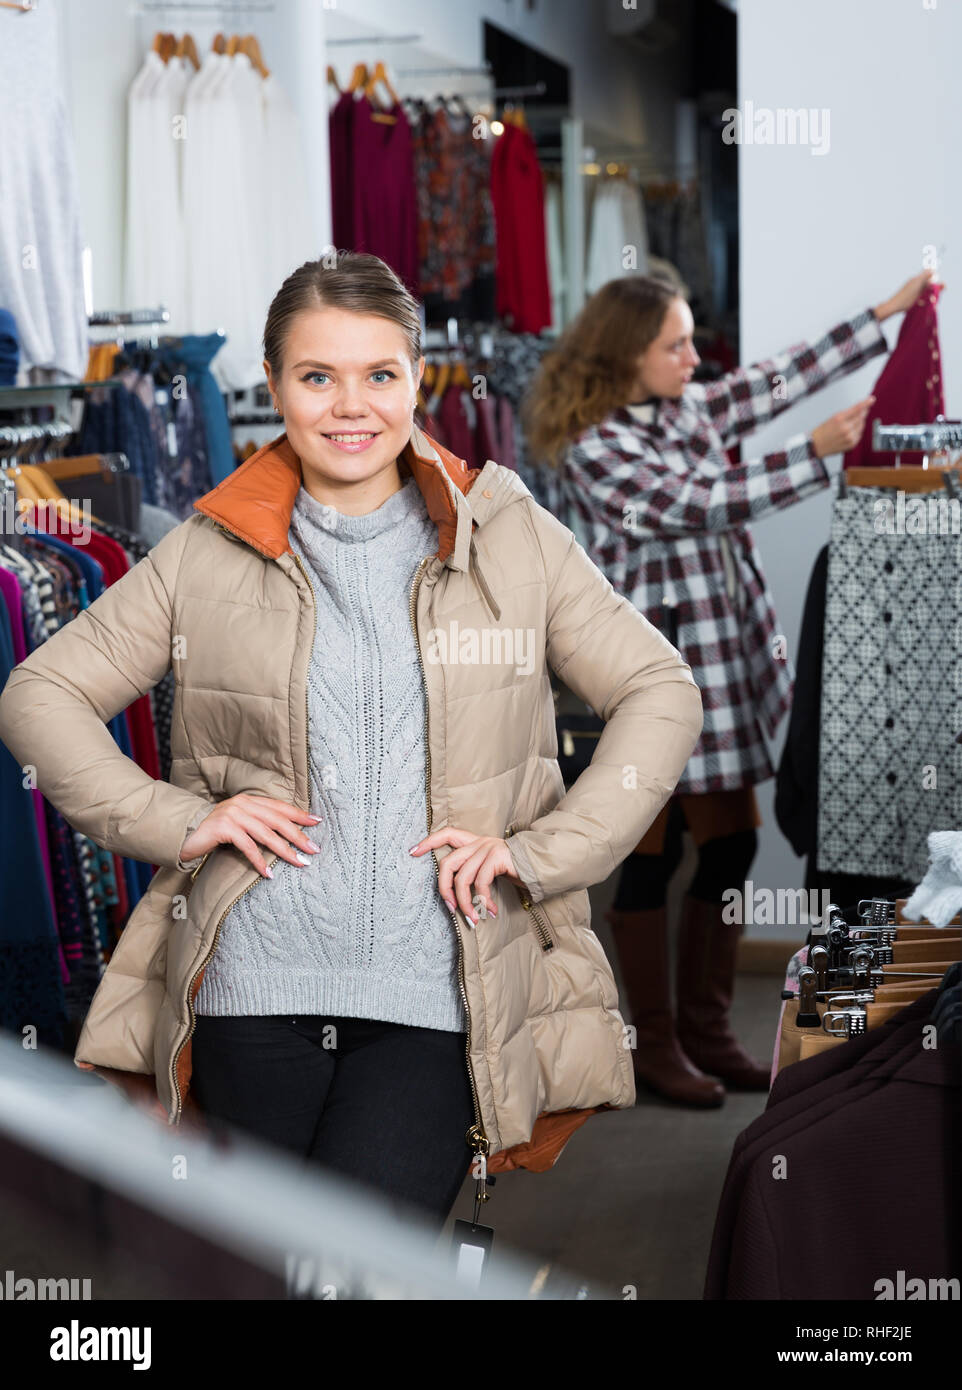 Young positive woman standing in overcoat in outerwear clothing boutique - Stock Image